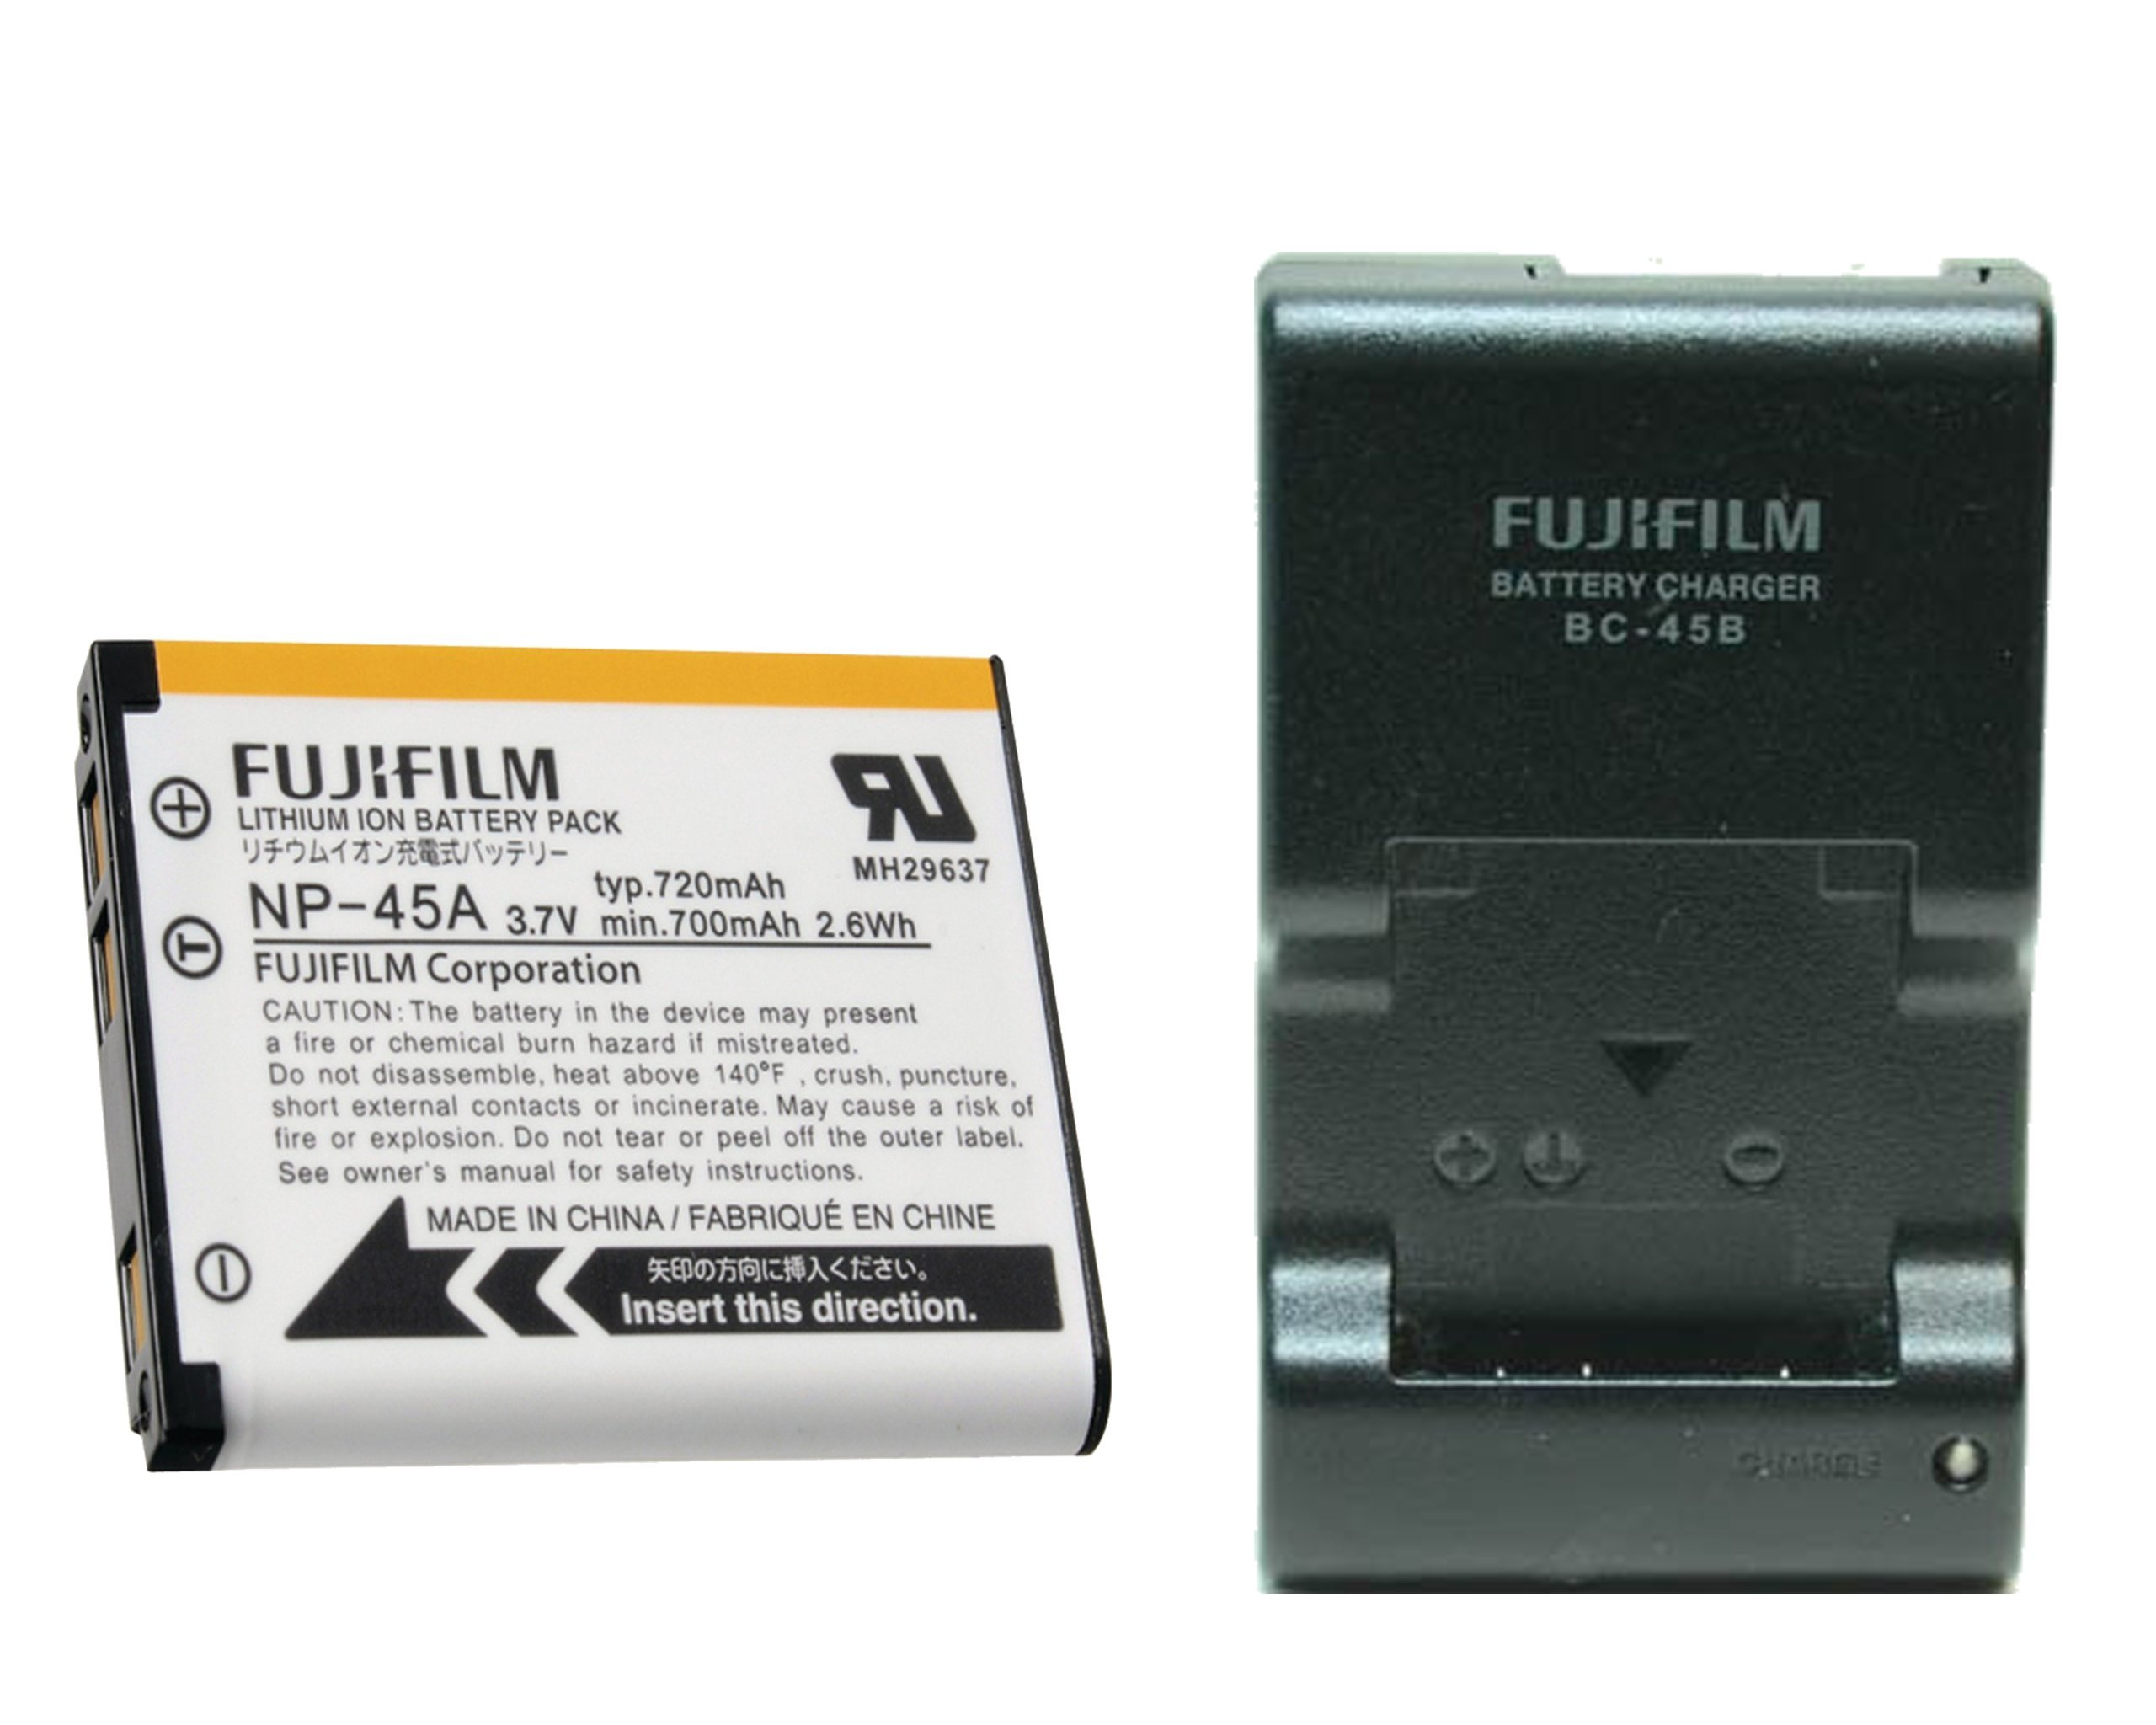 Bonacell 2 Pack NP-45 Battery 1200mAh and Charger Kit Compatible with Fujifilm FinePix XP140 XP130 XP120 XP95 XP90 XP50 XP60 XP70 XP80 T350 T360 T400 T500 T510 T550 T560 JX550 JX580 and More